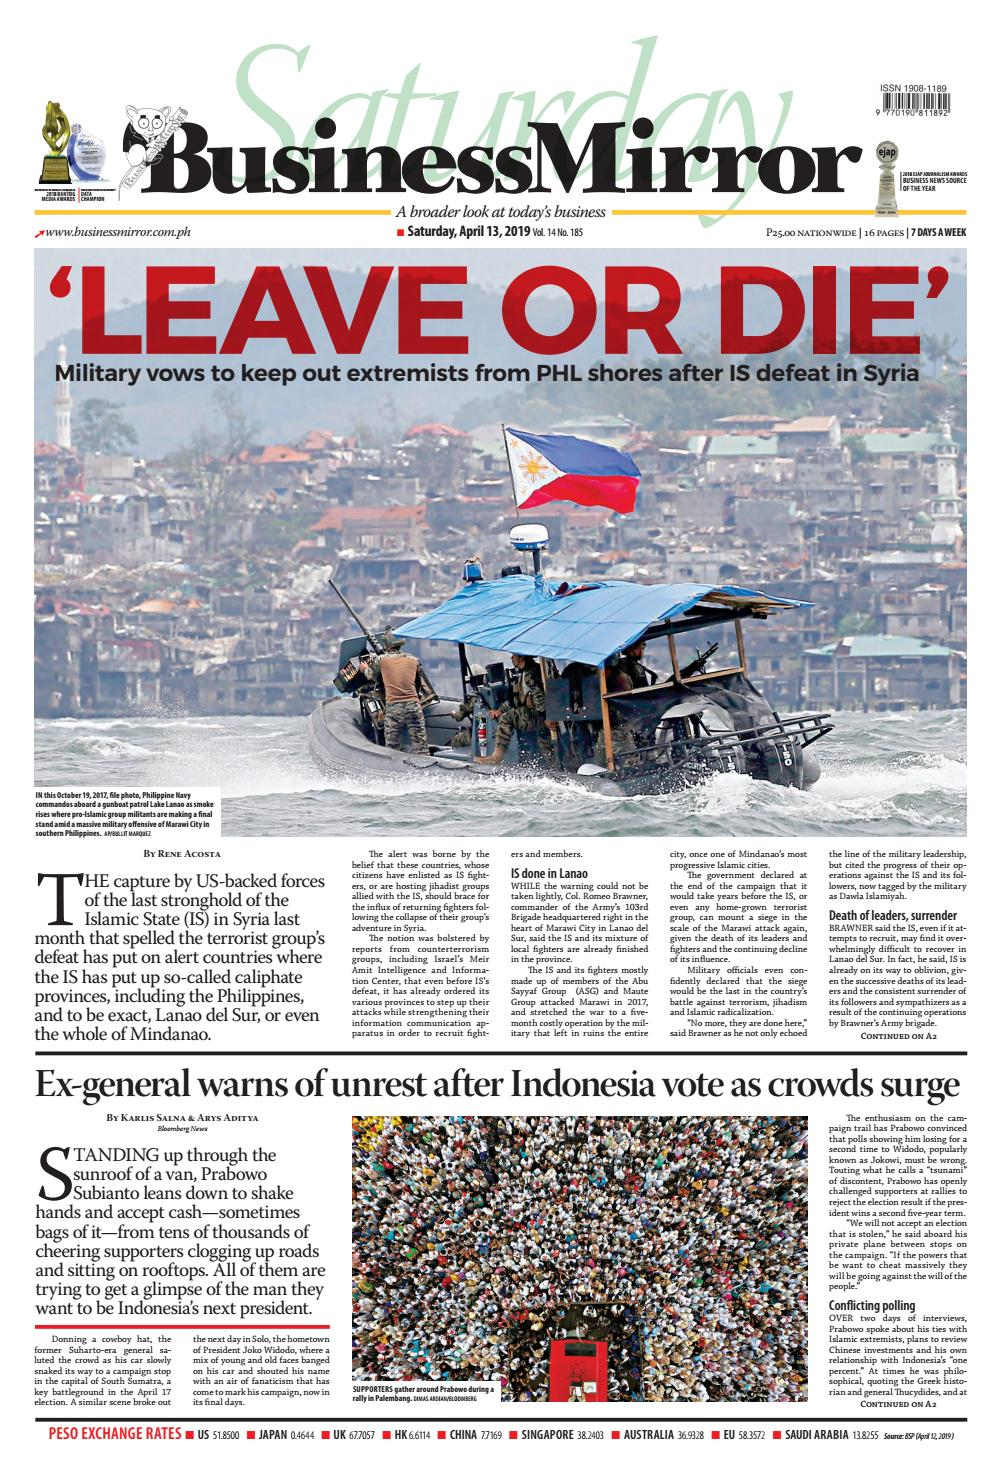 Businessmirror April 13, 2019 by BusinessMirror - issuu